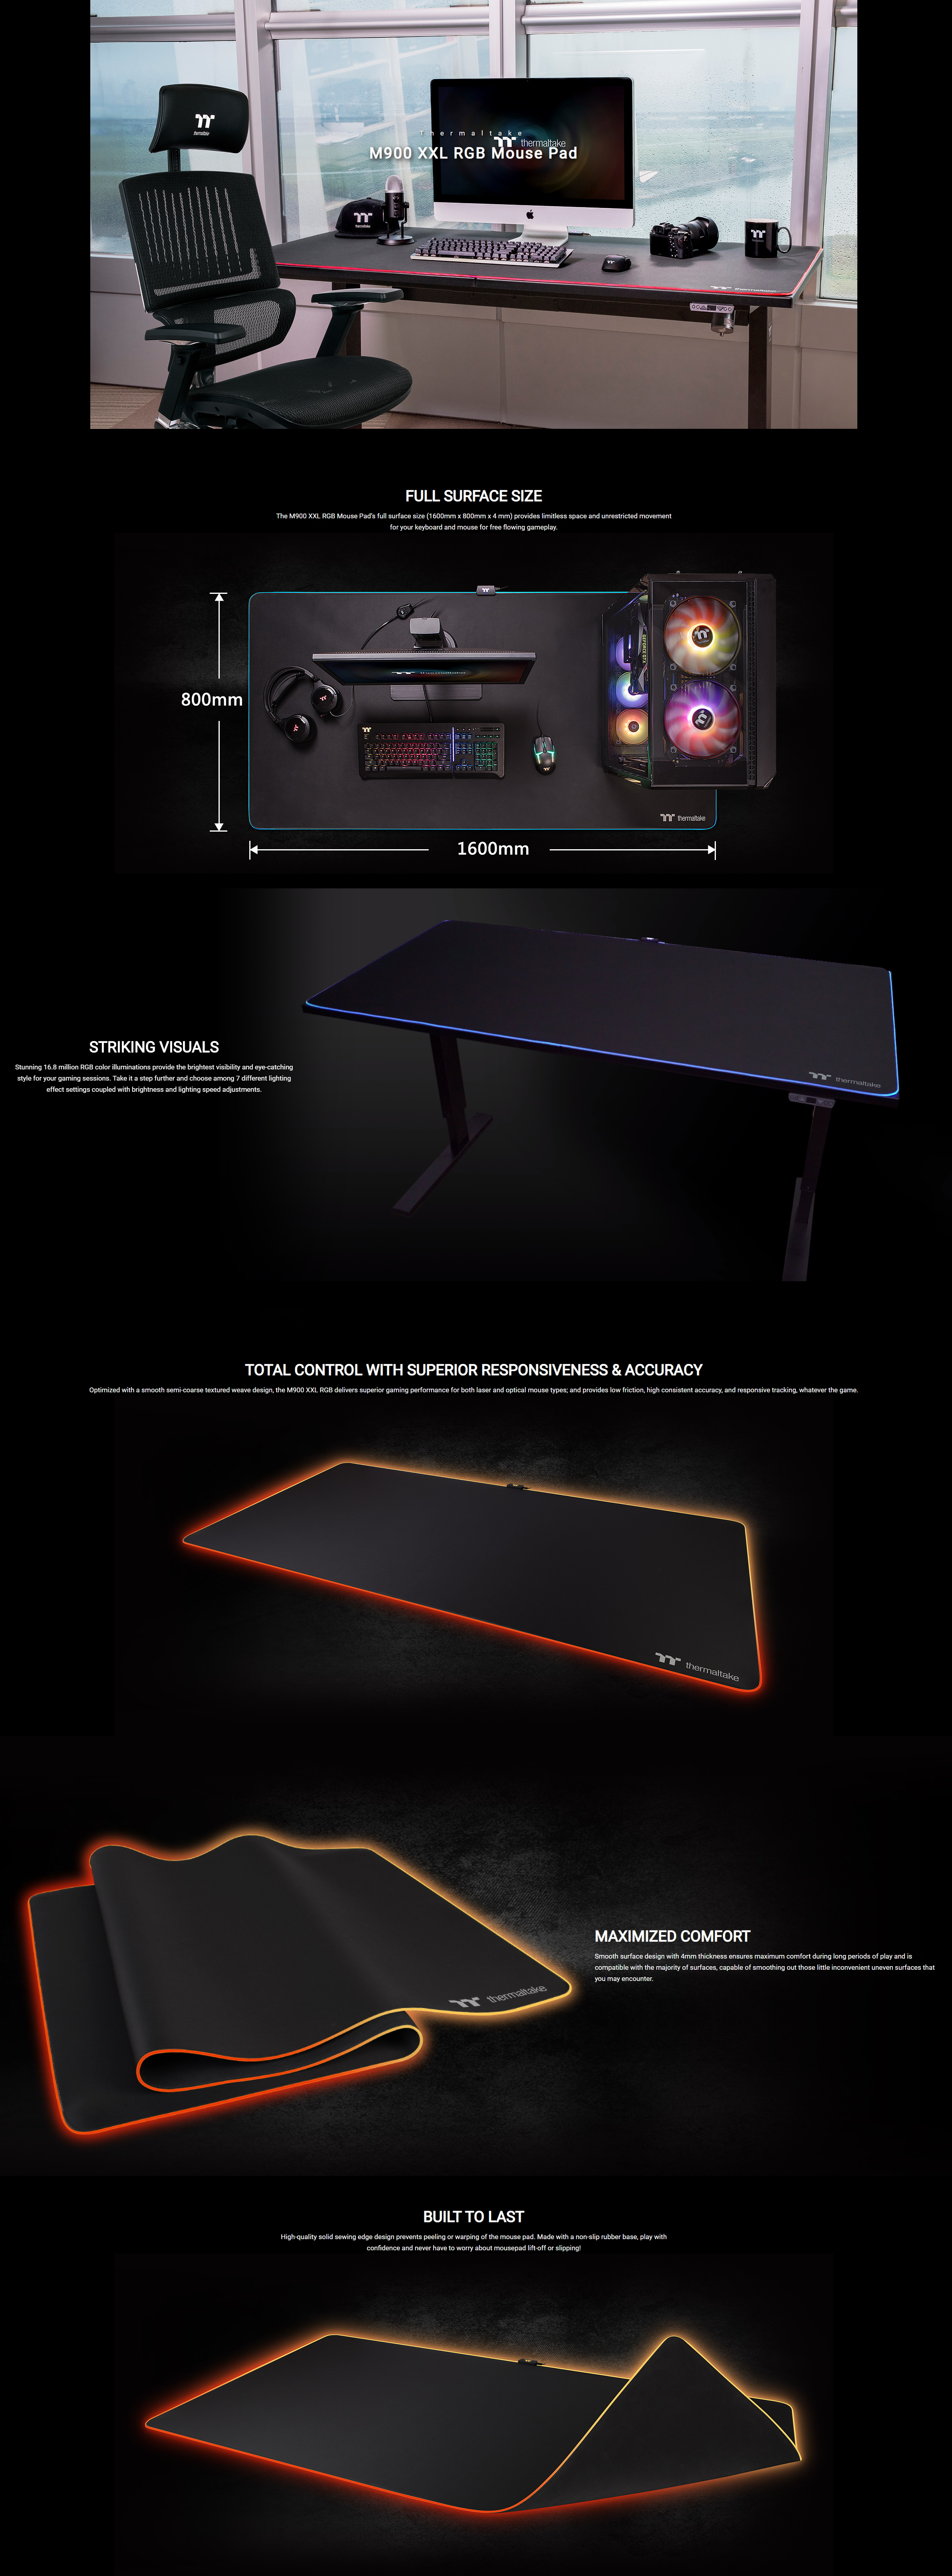 A large marketing image providing additional information about the product Thermaltake M900 XXL RGB Gaming Mouse Pad - Additional alt info not provided